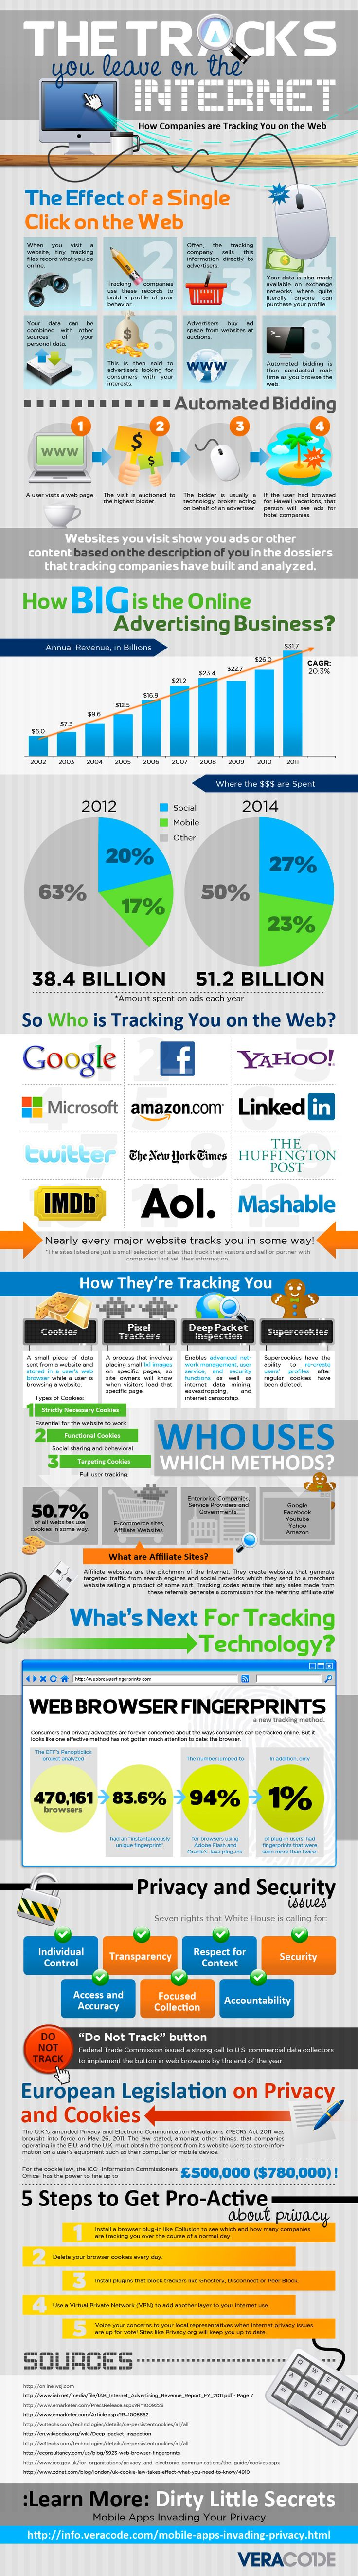 Ever stopped to think how you're being tracked online? This infographic explains which websites are tracking you and what they're looking for.